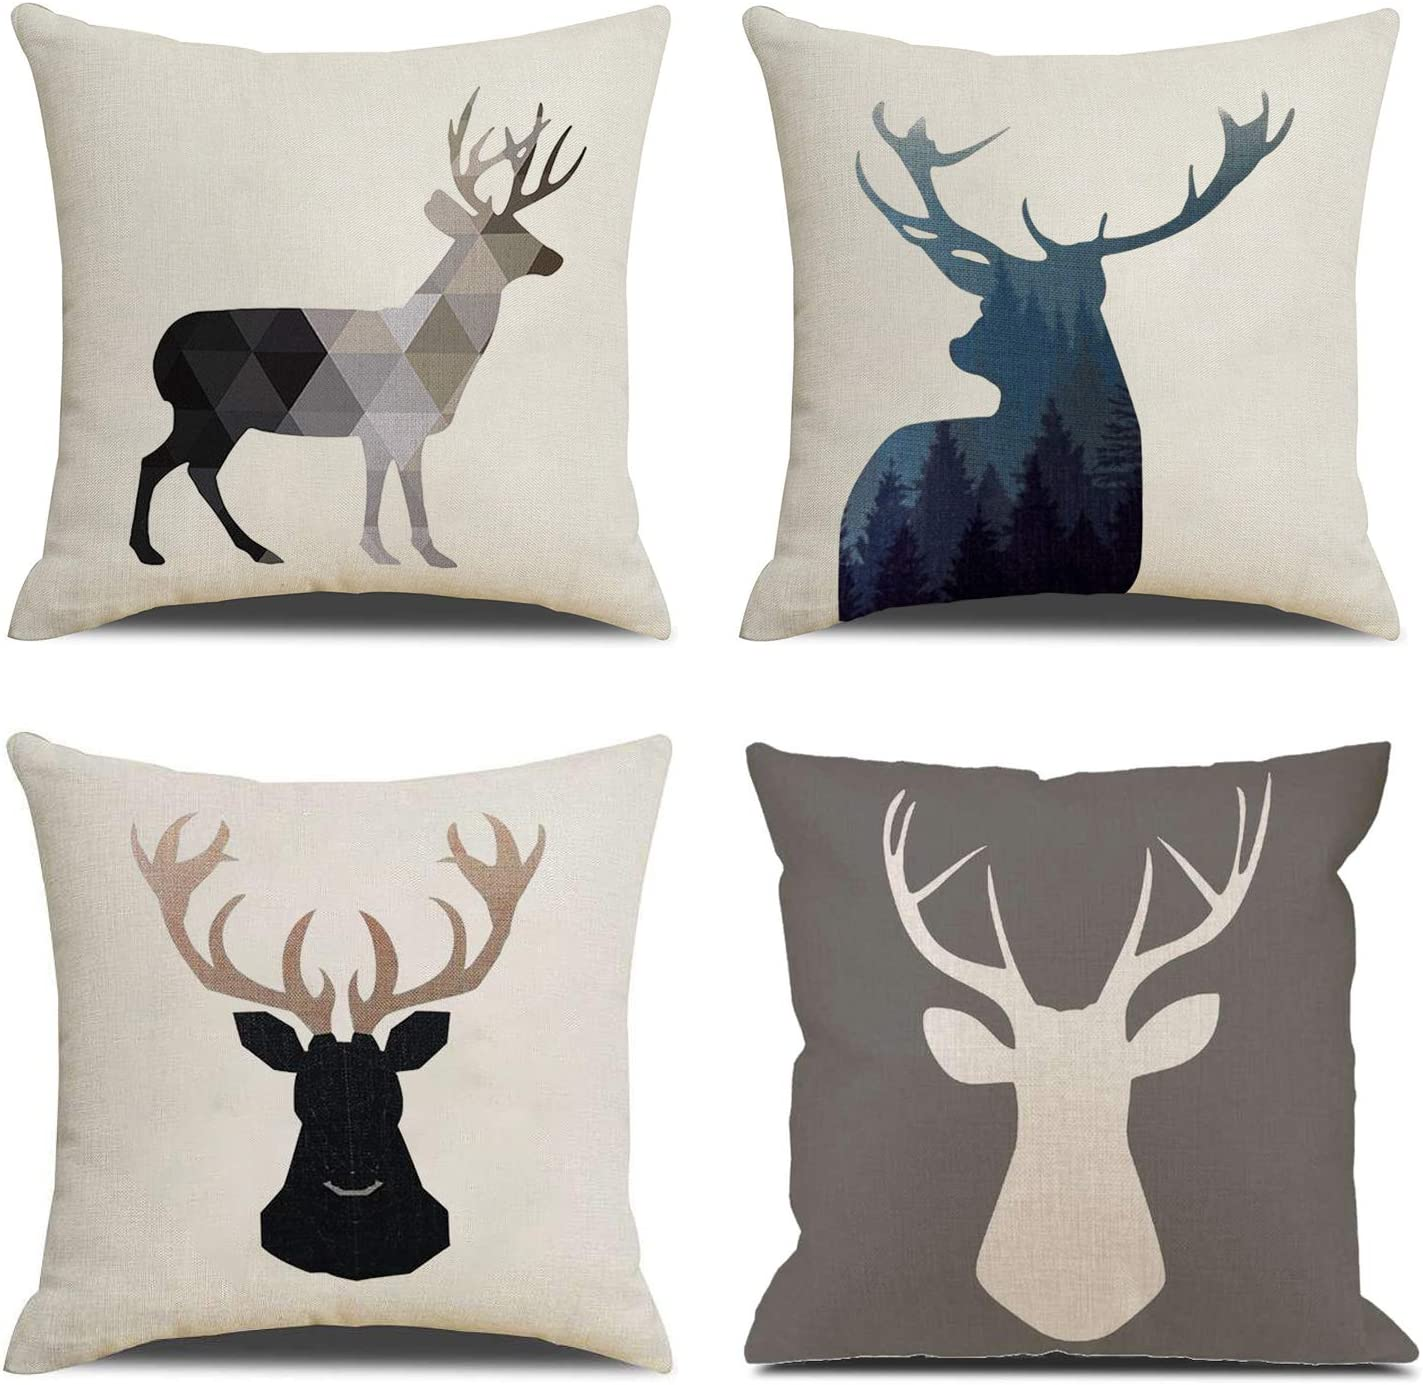 Amazon Com Nydecor Deer Throw Pillow Covers Deer Pillow Cases Decorative Animal Pillowcase Cotton Linen Cushion Cover For Couch Bed Sofa 18x18 Set Of 4 Home Kitchen